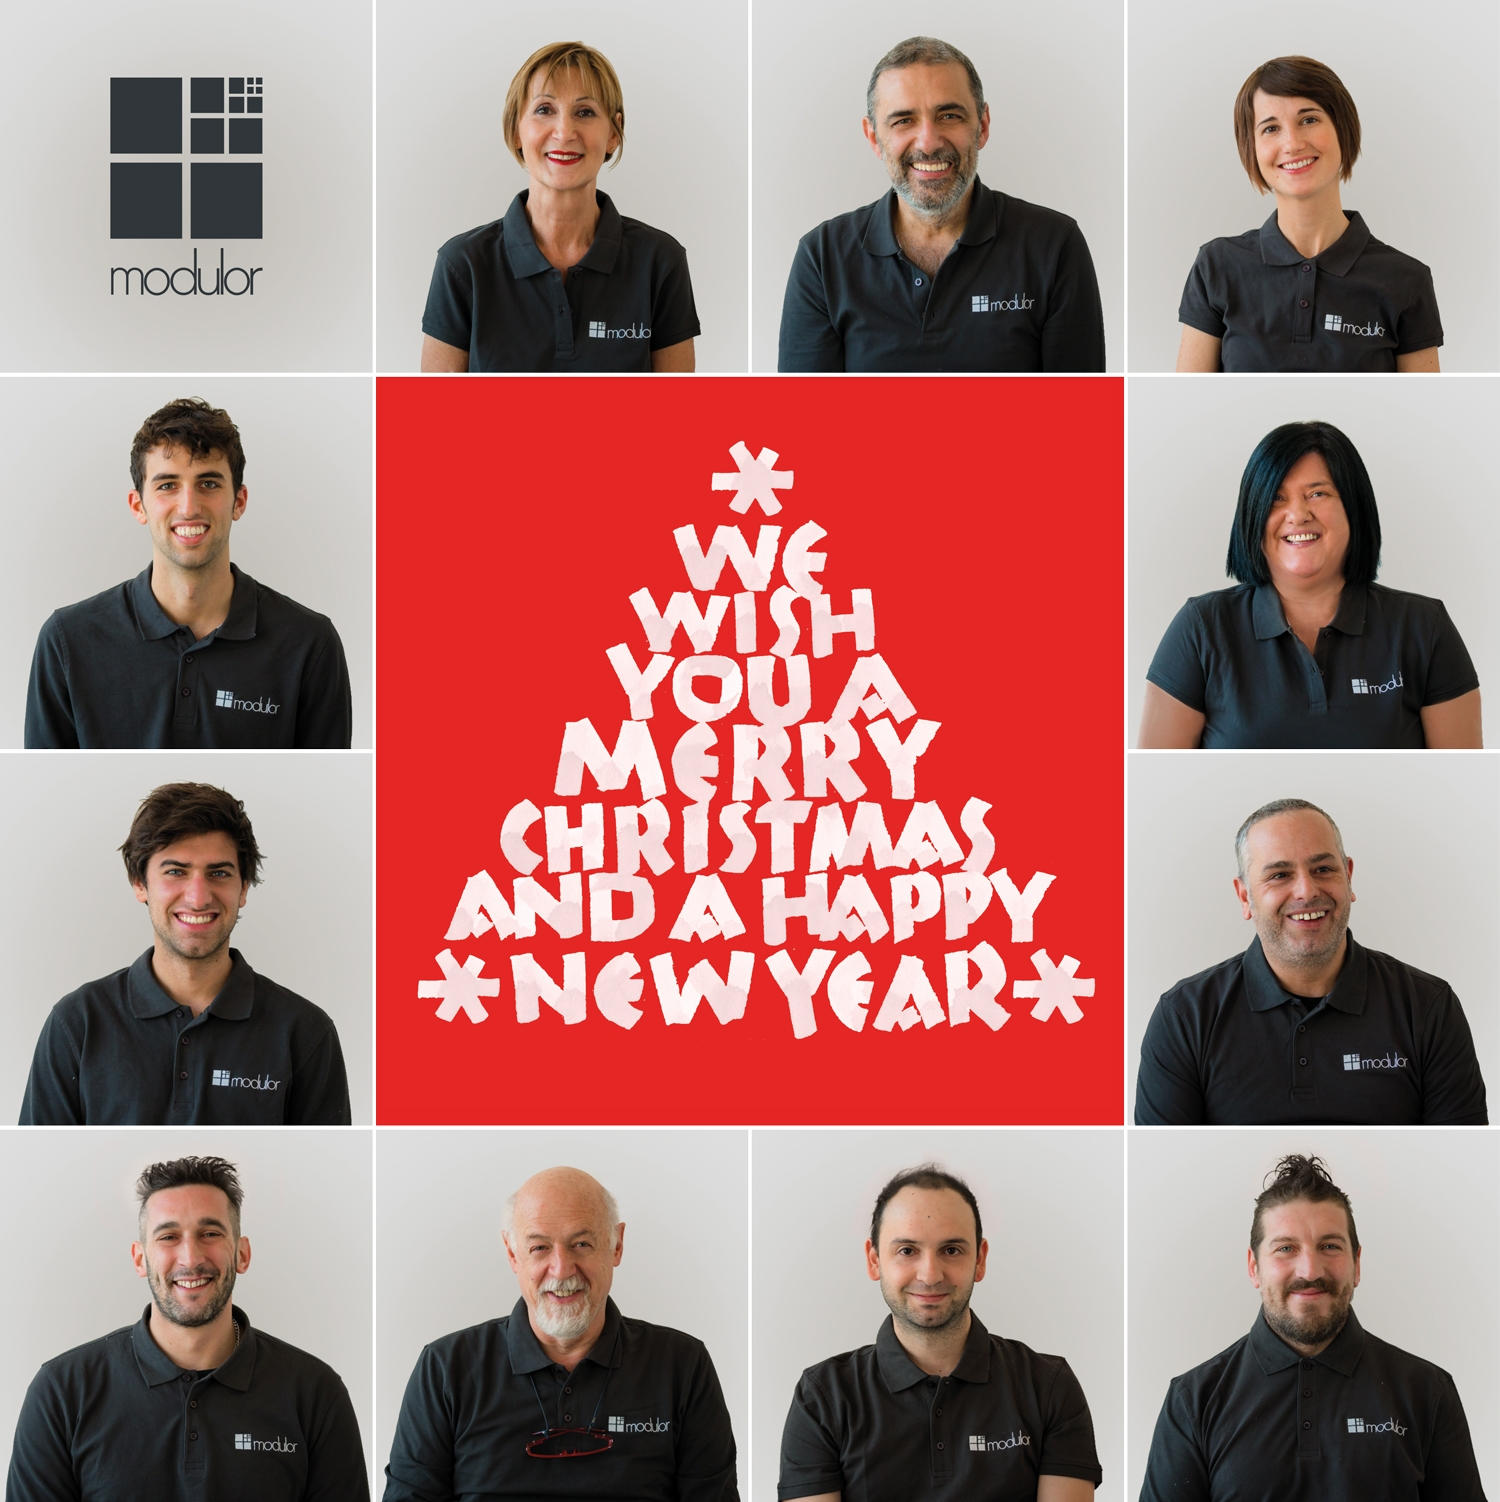 Our best wishes for a Merry Christmas and a Happy New Year